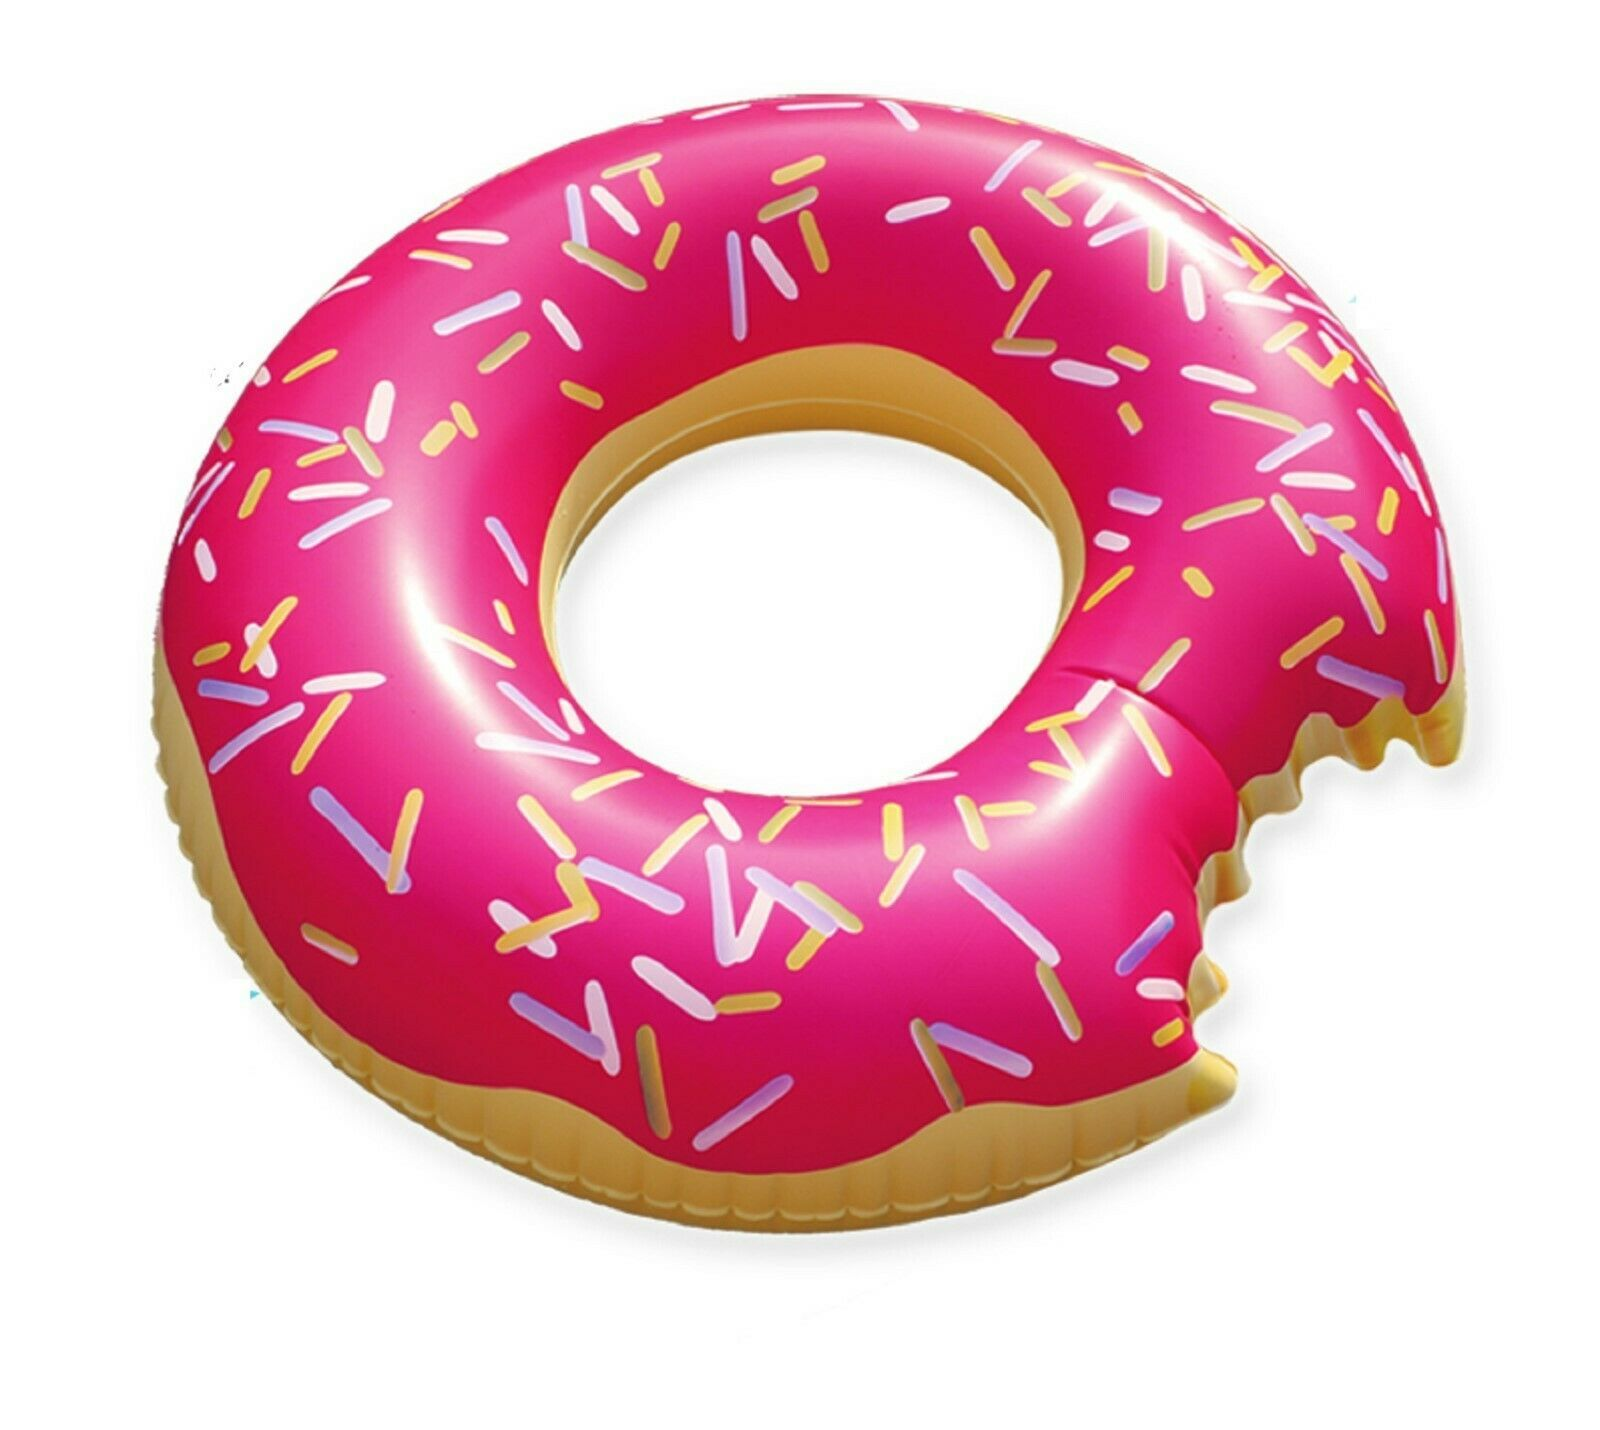 Swim About Large Donut Swim Ring Tube Pool Inflatable Floats for Adults (Pink)